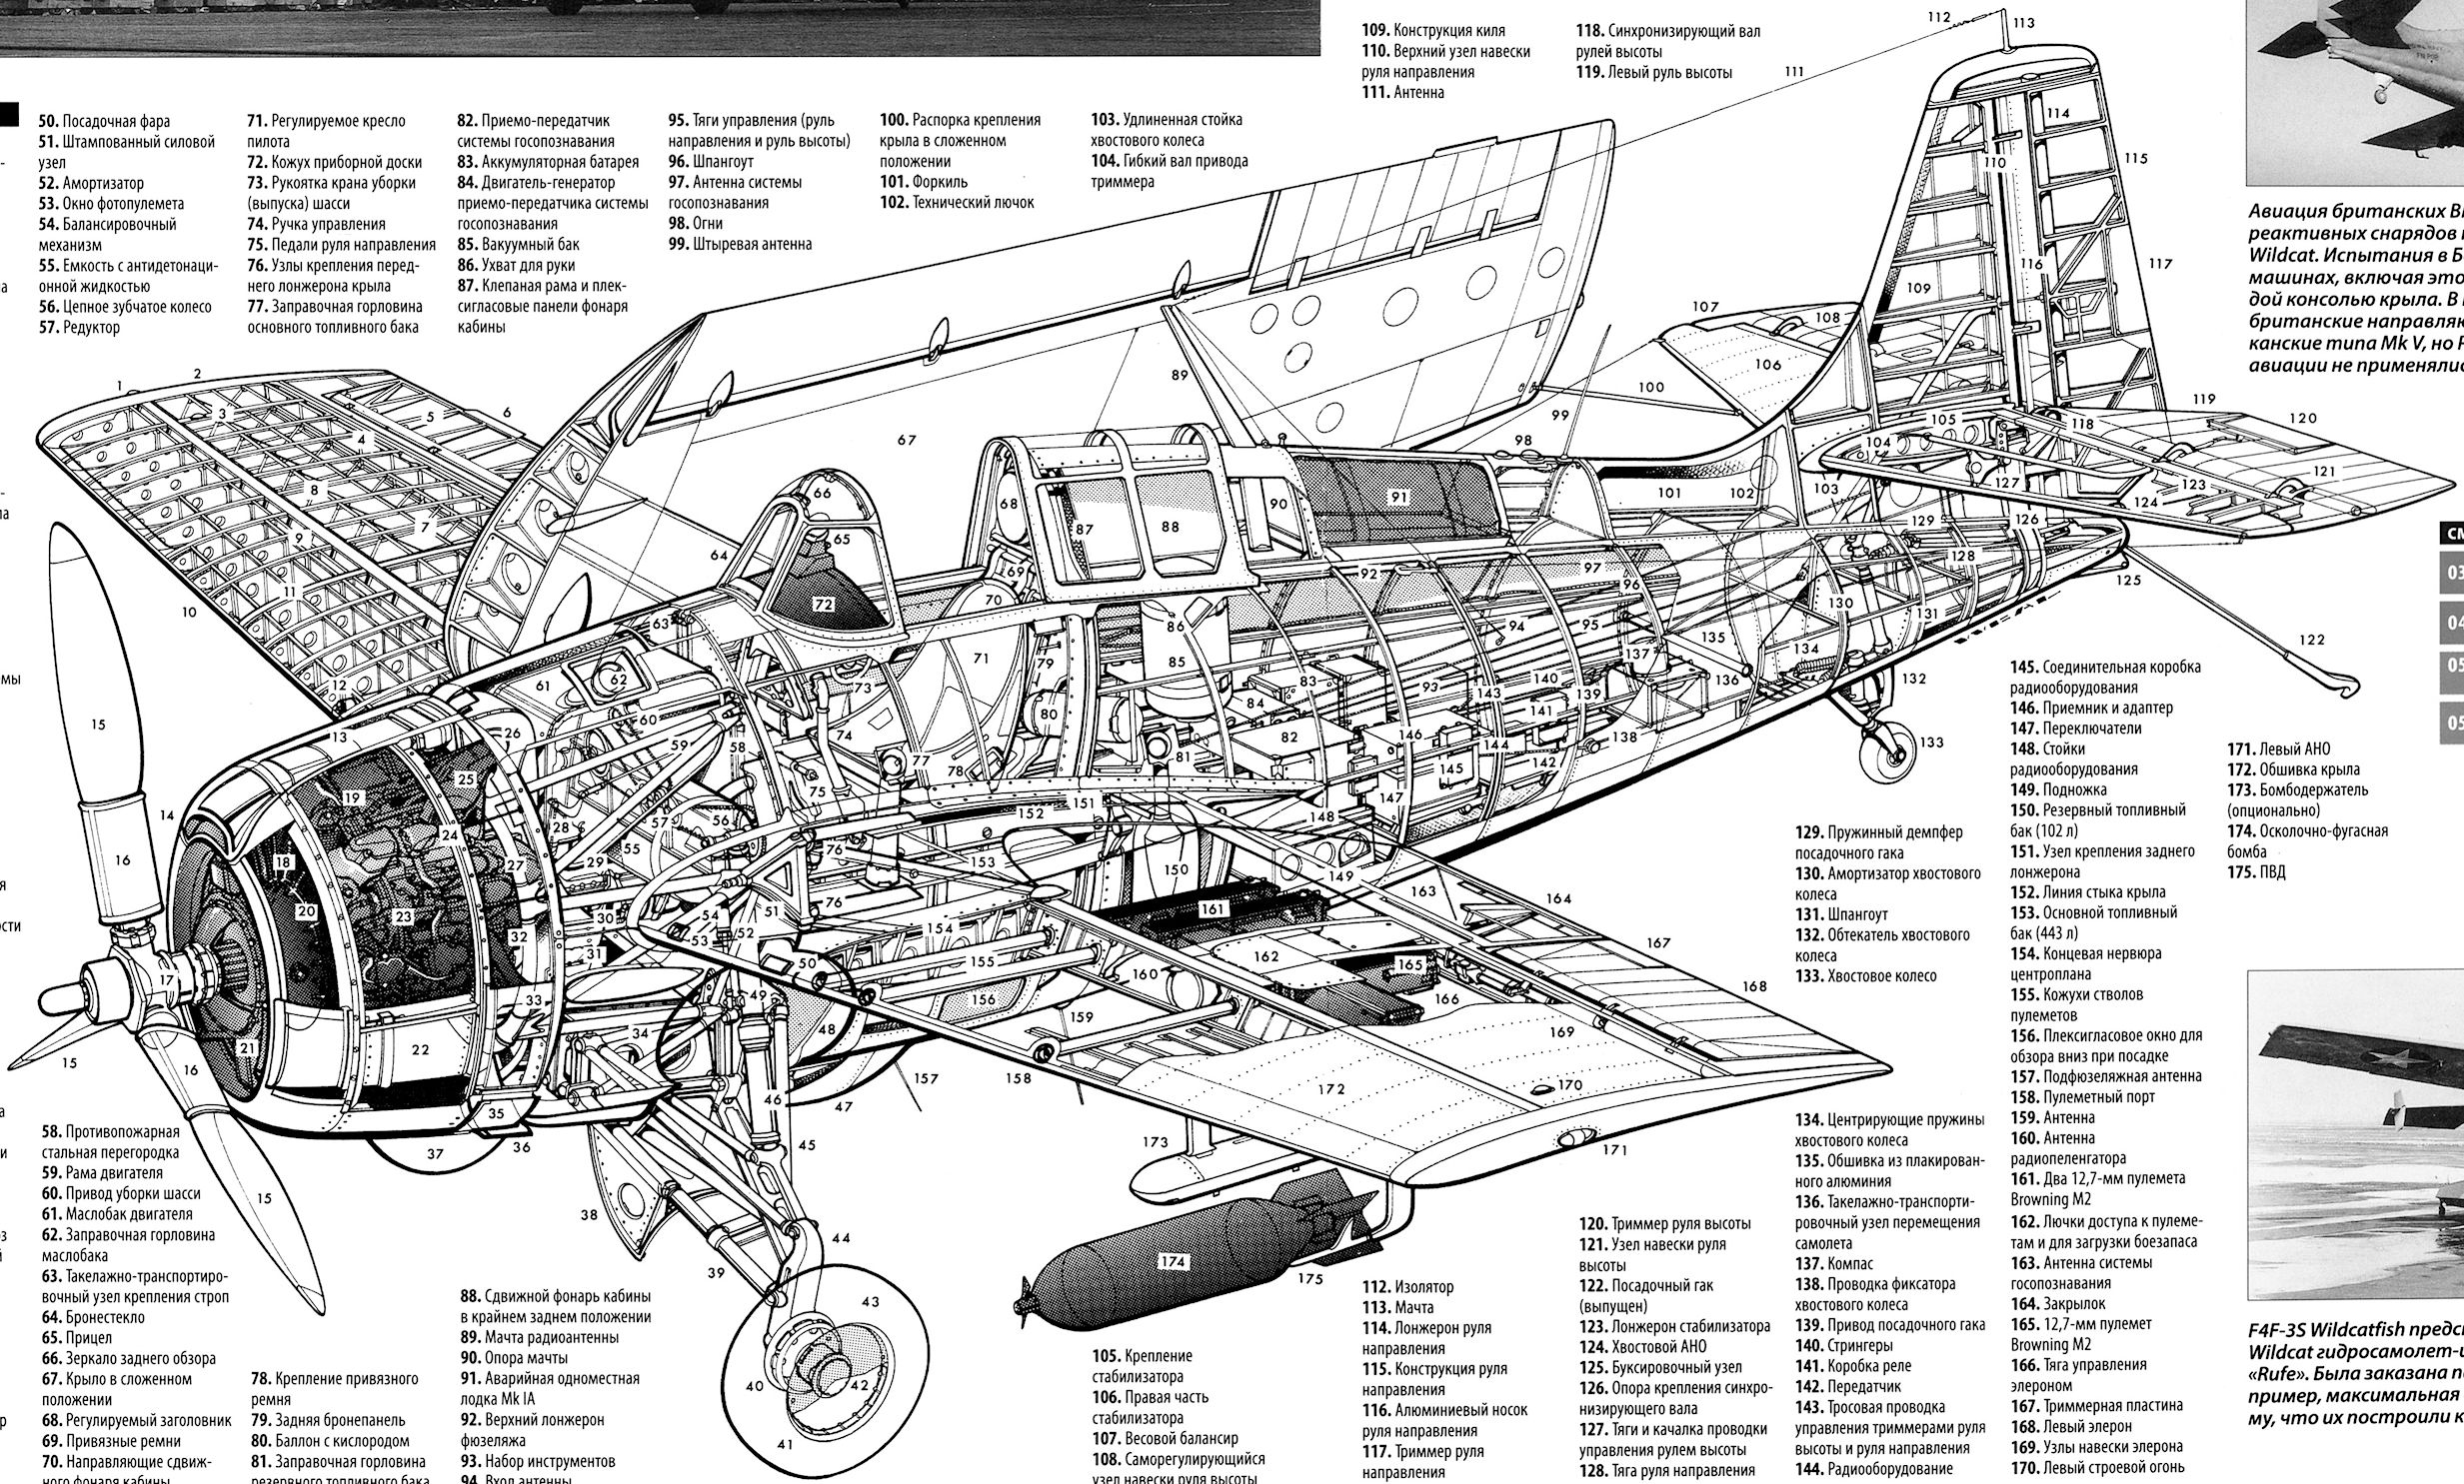 general aviation coloring pages - photo#30